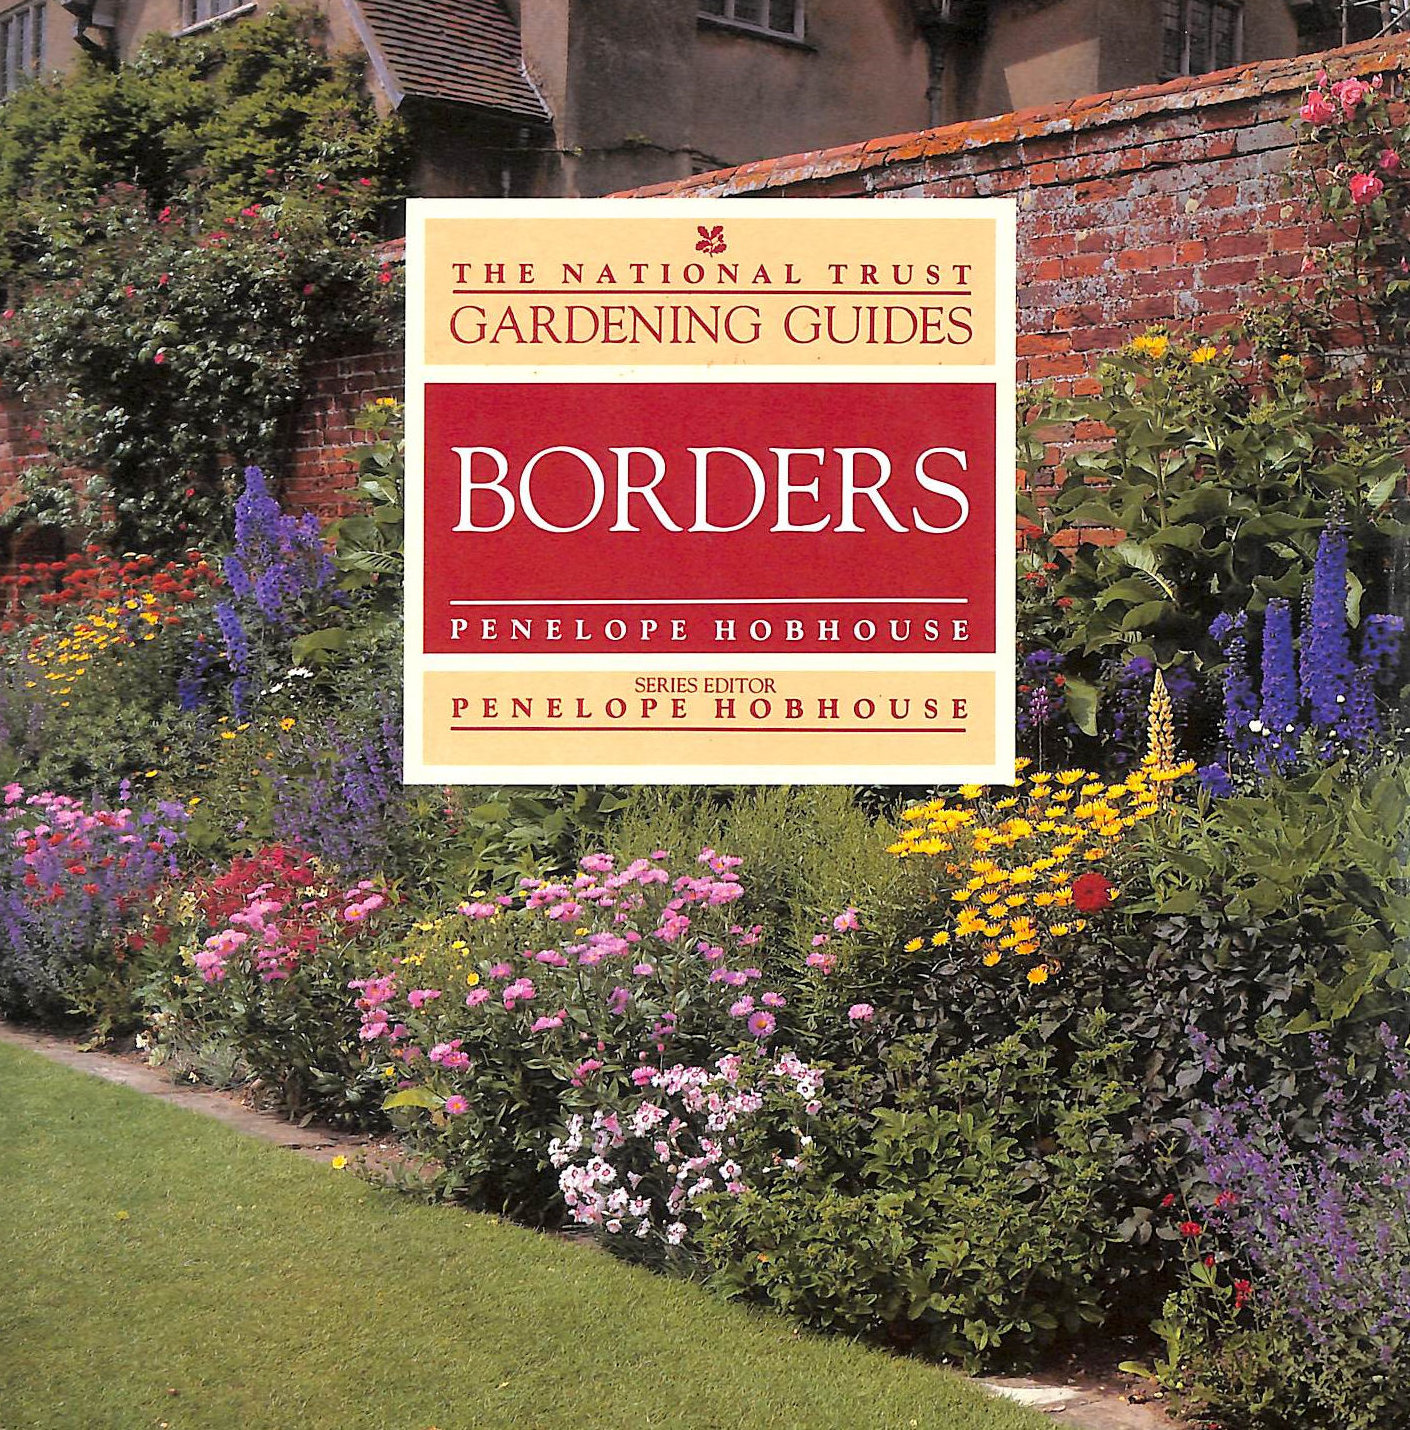 Image for The National Trust Gardeining Guides. Borders.